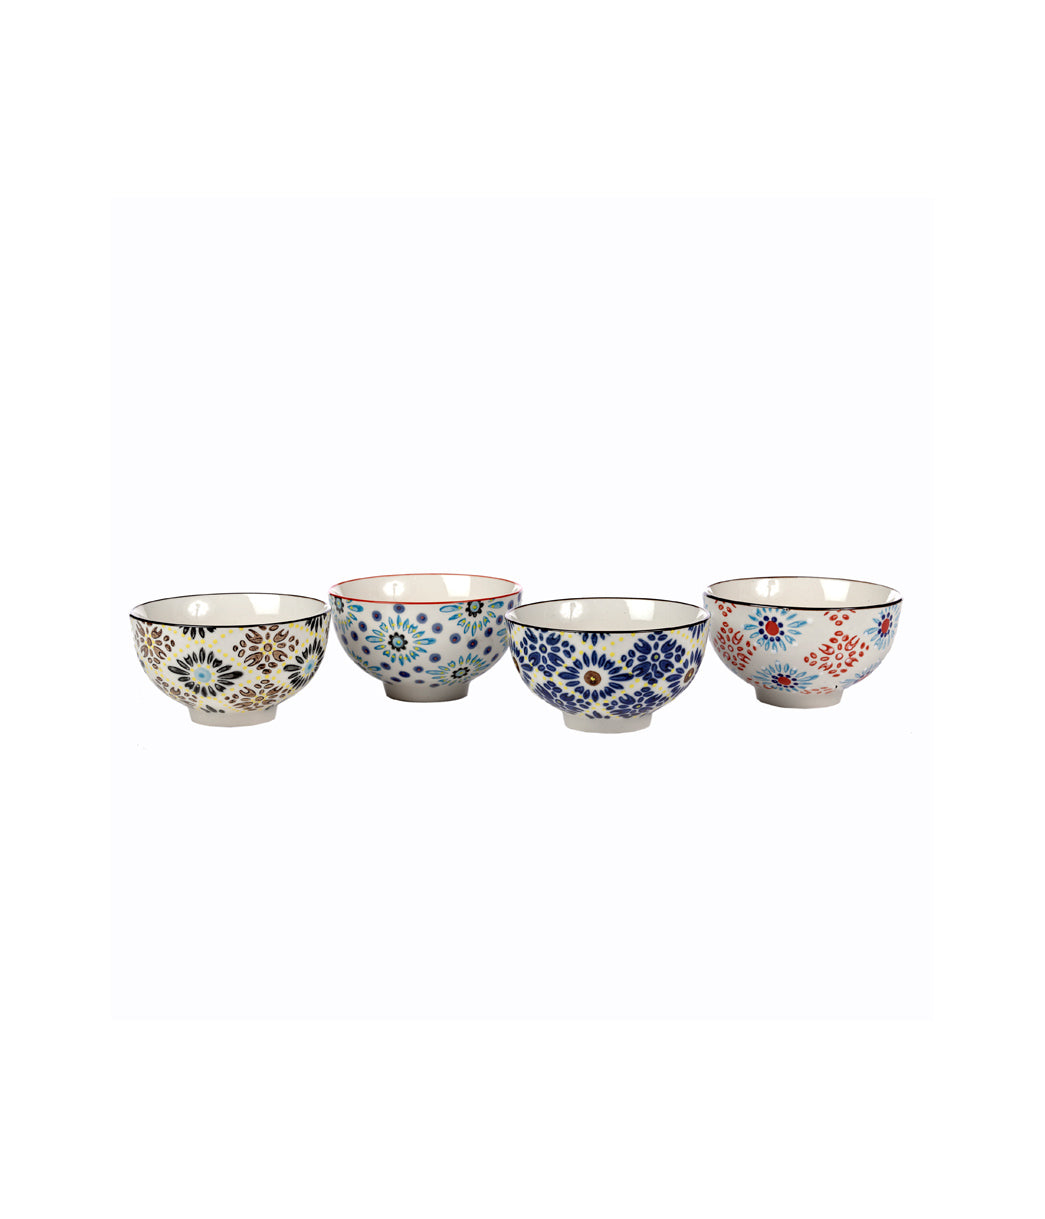 Bowls mosaic set of 4